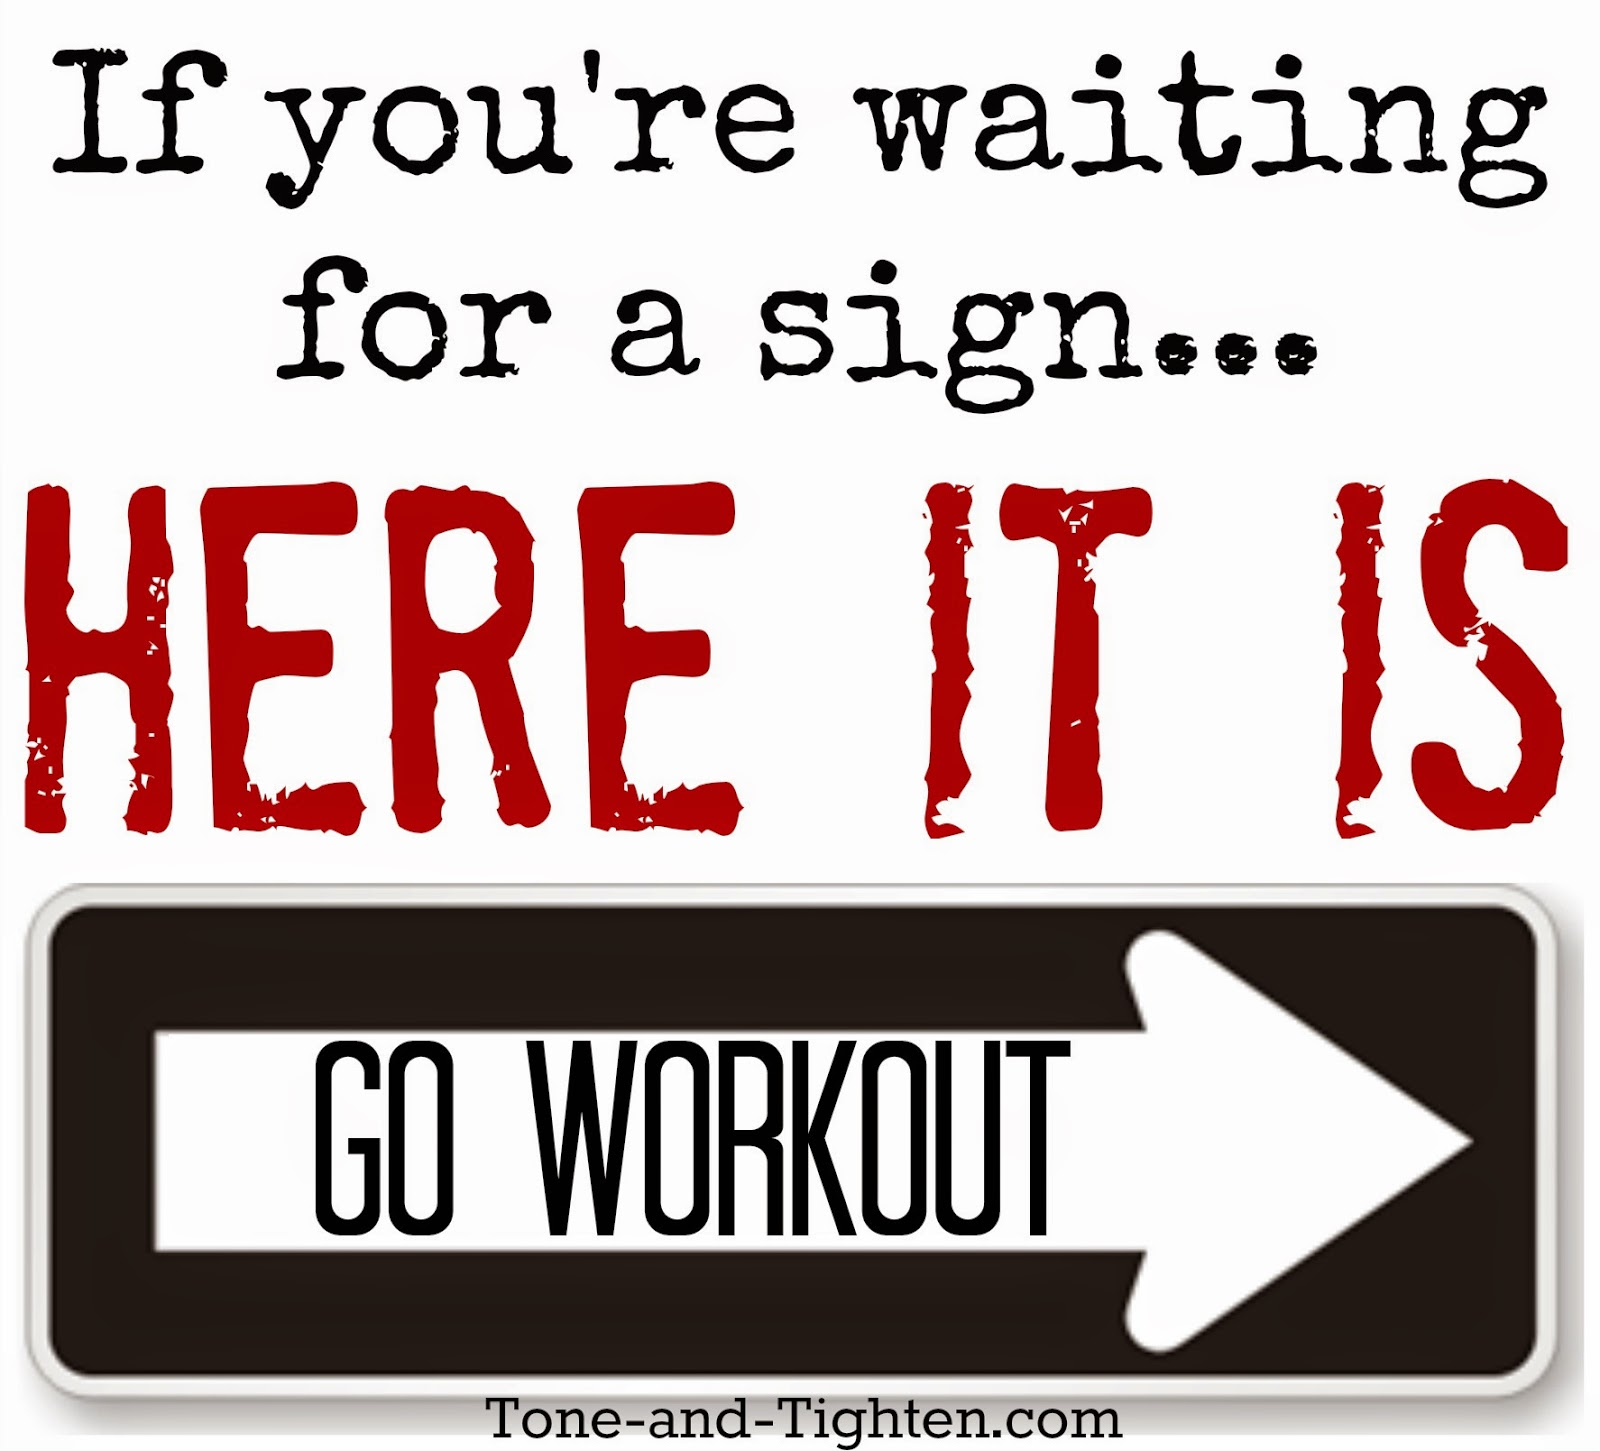 Get Inspired With These Motivational Workout Quotes: Stop Waiting And Start Doing